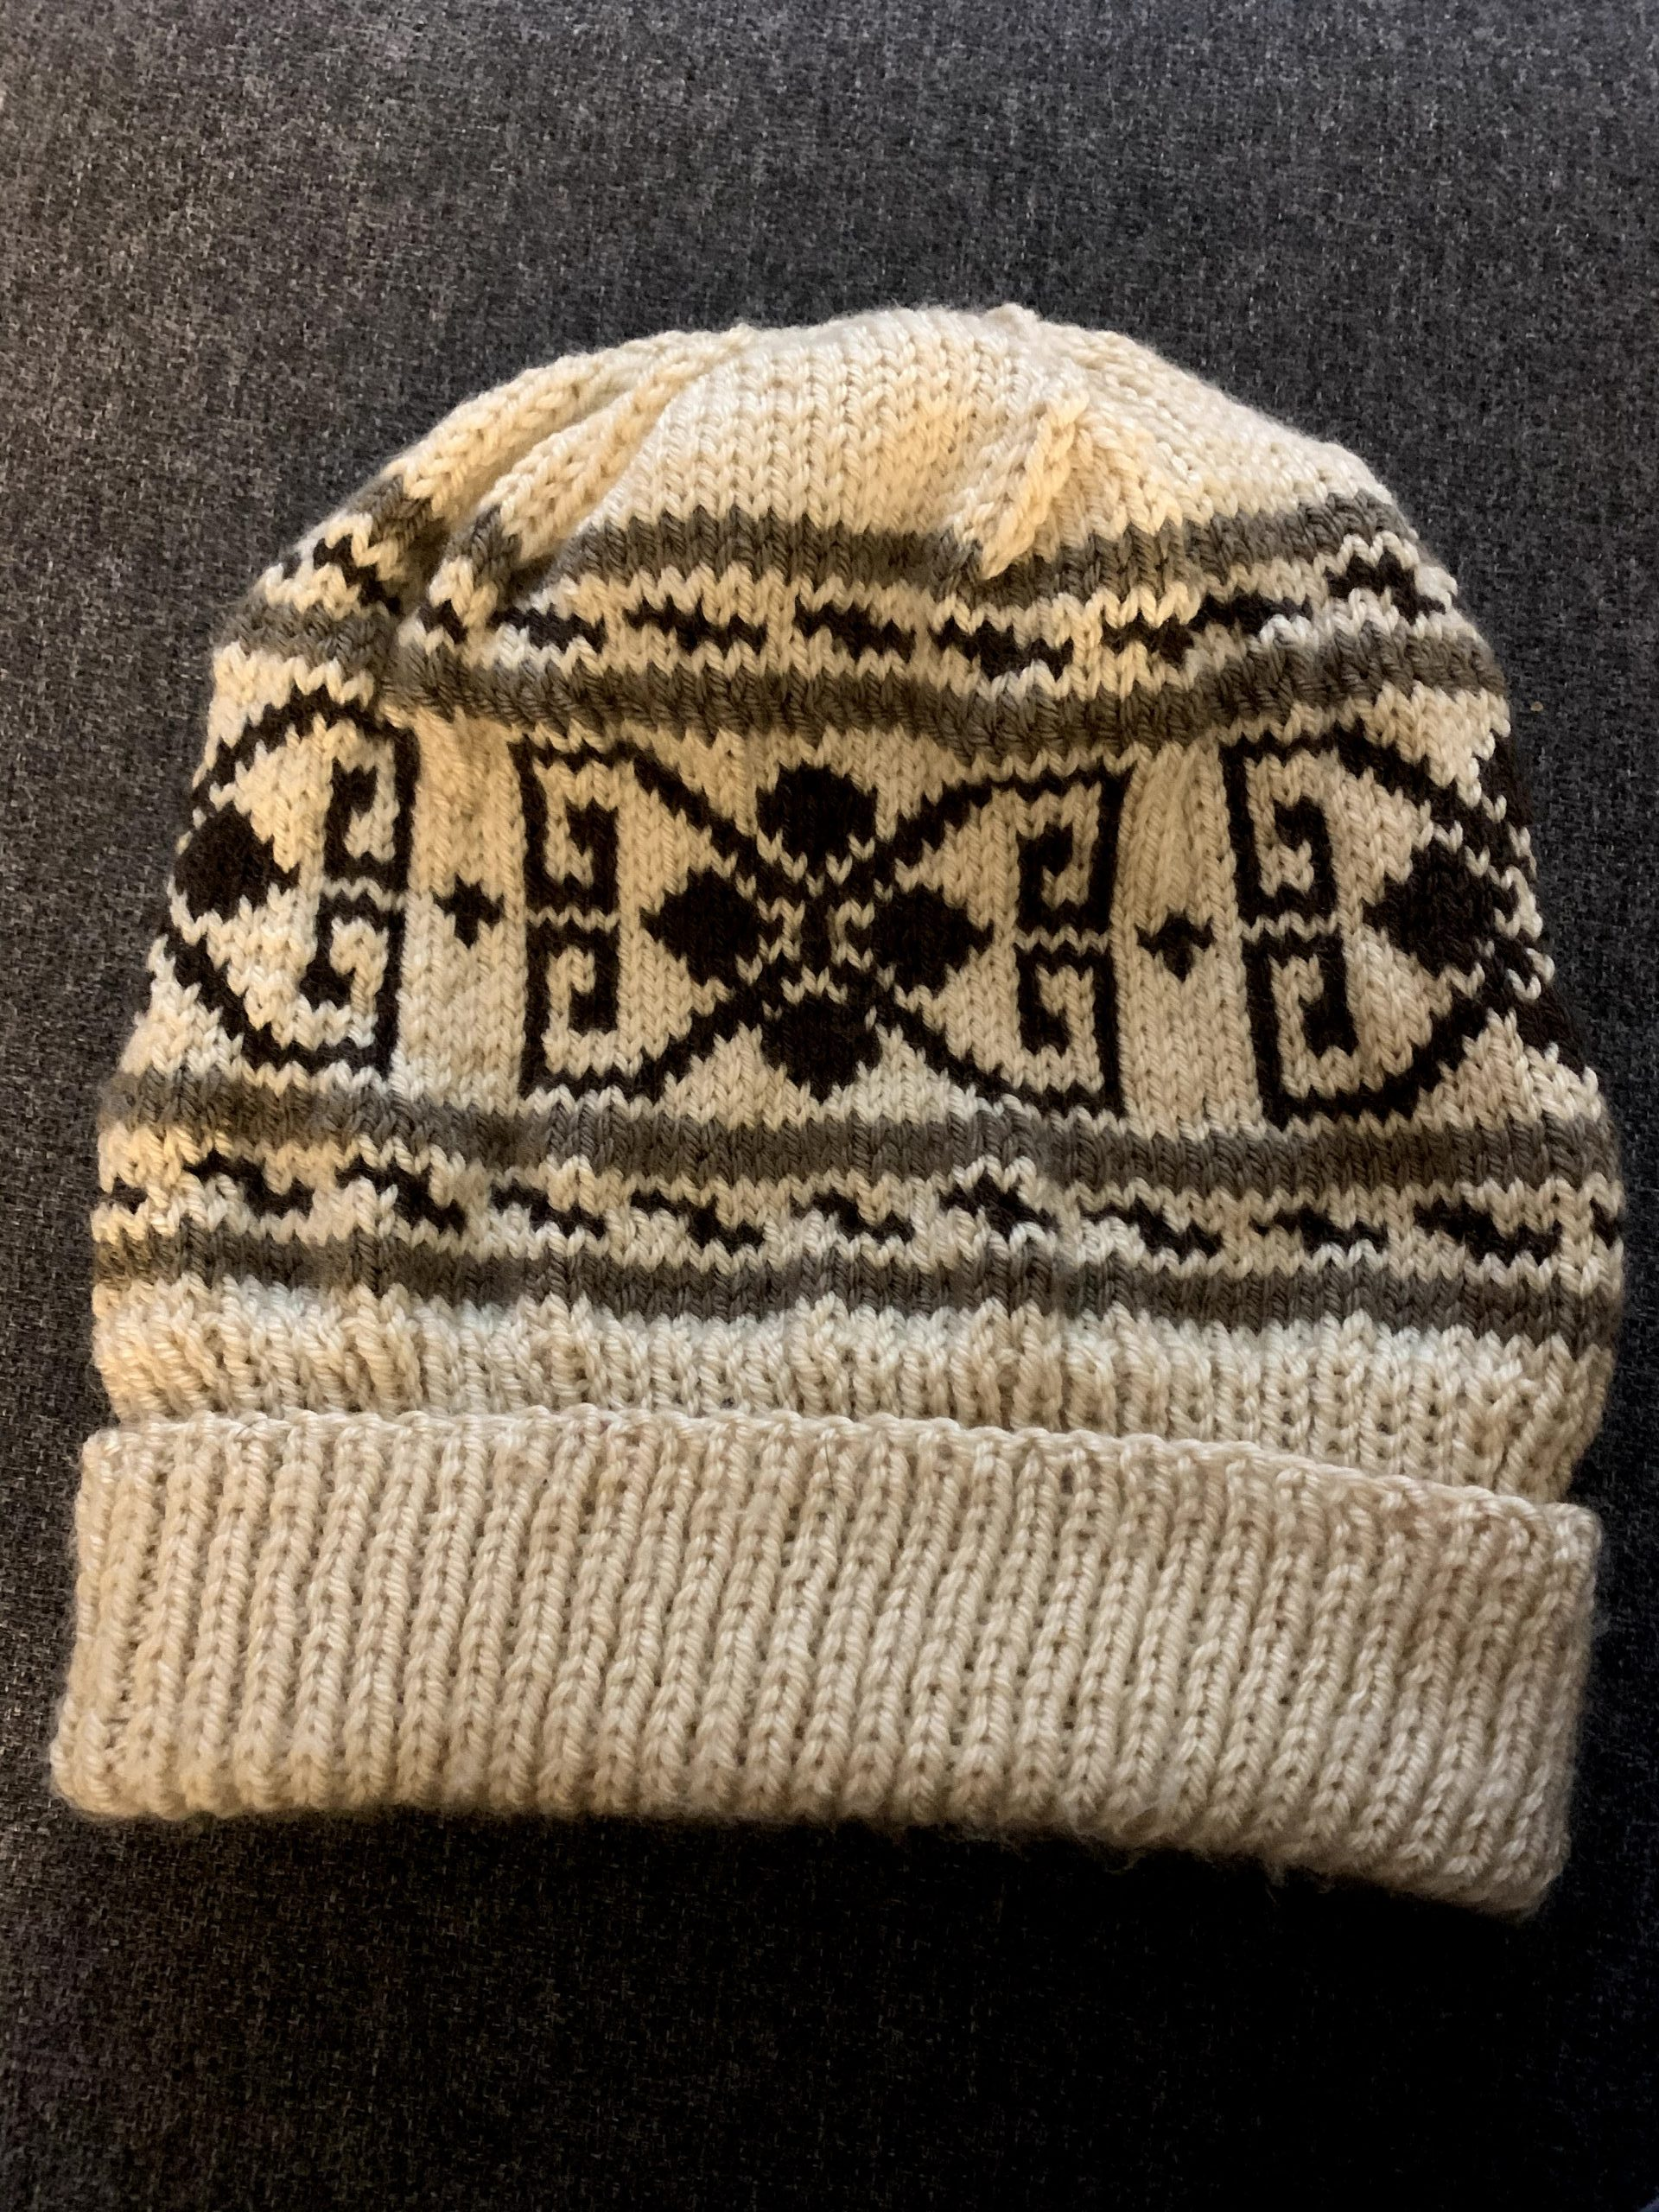 The Dude Hat